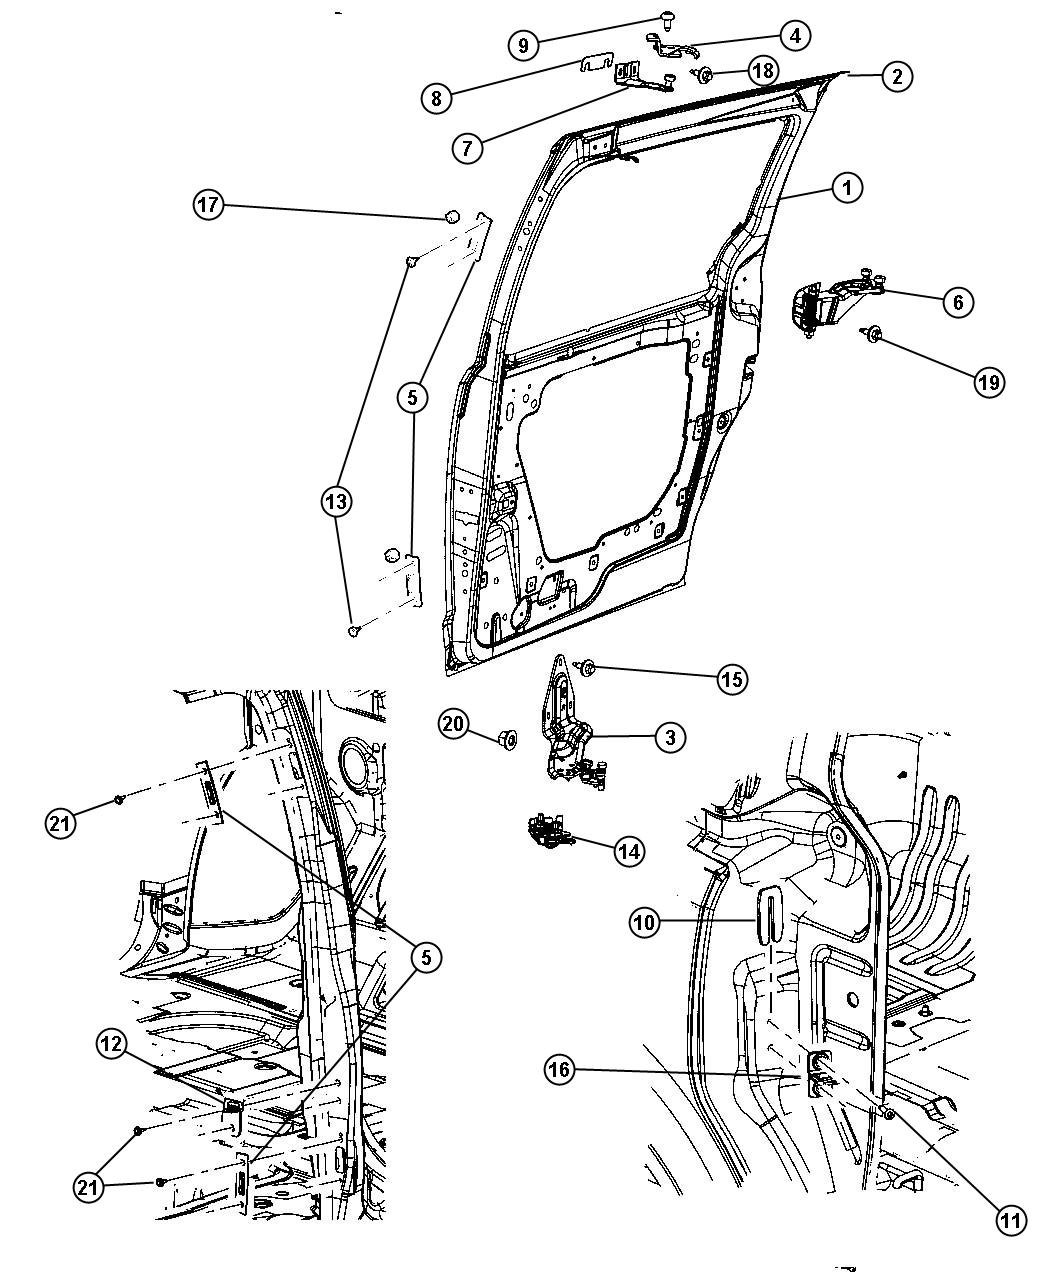 Service manual [2012 Chrysler Town Country Sliding Door